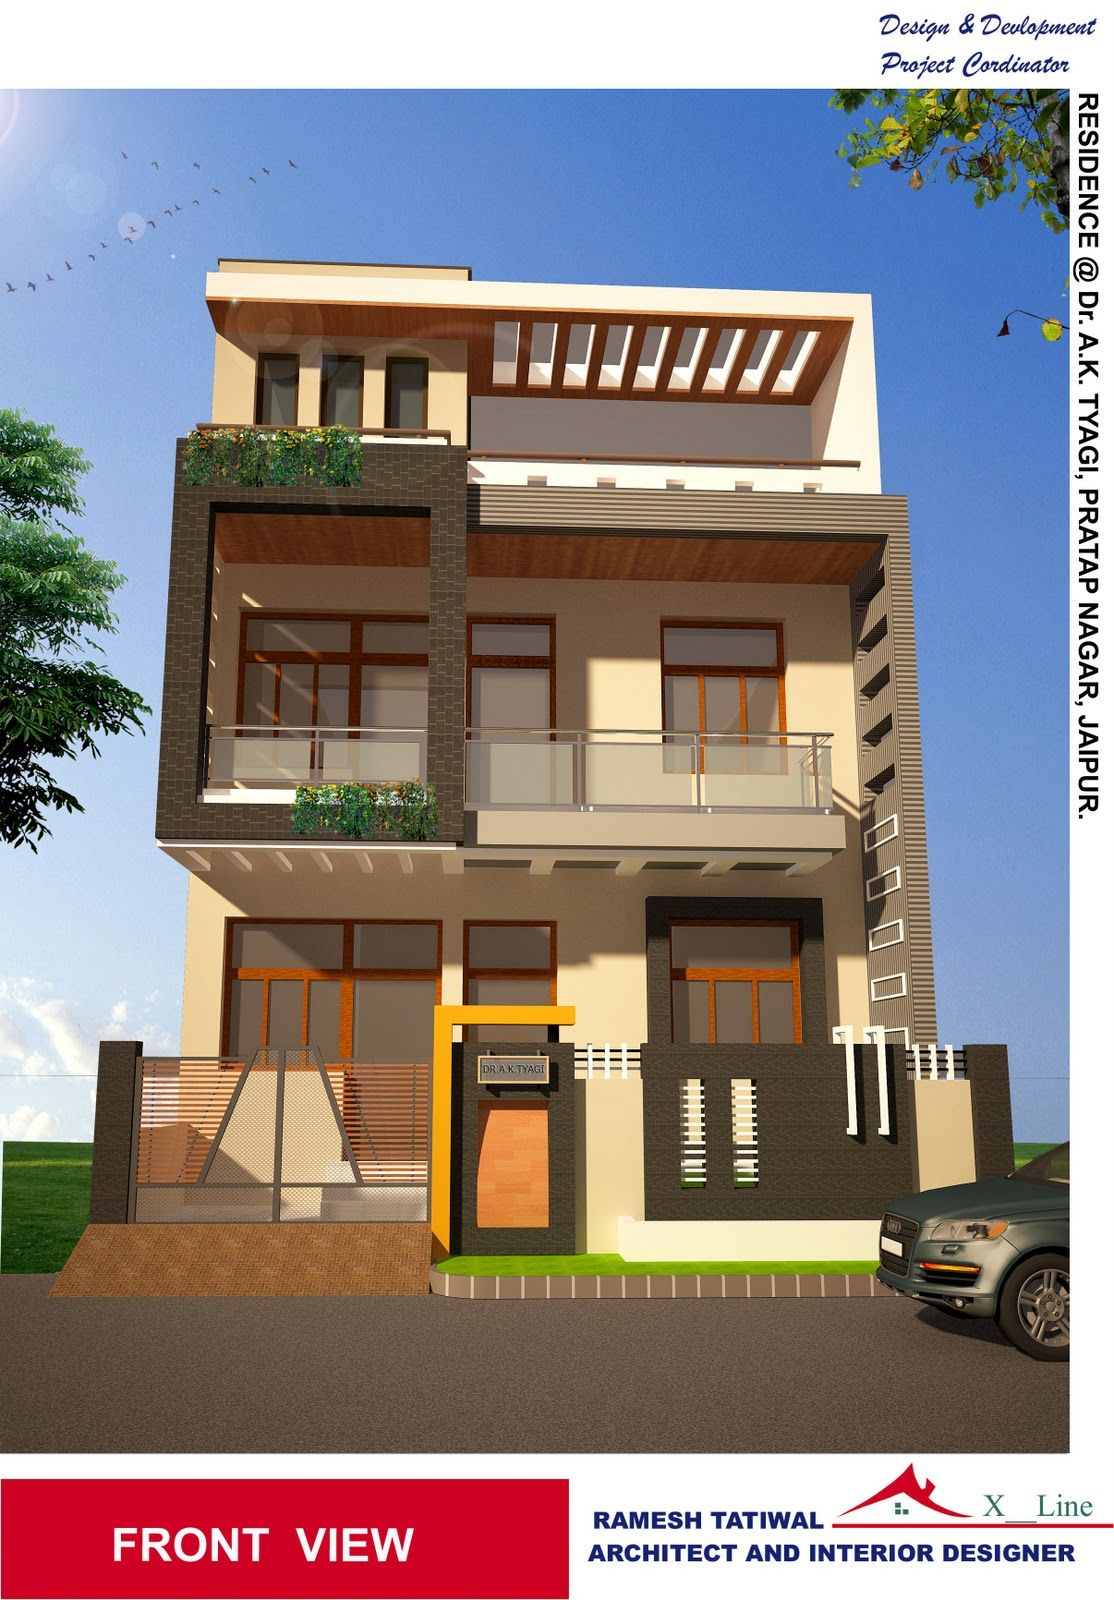 New architectural designs for Front view of duplex house in india